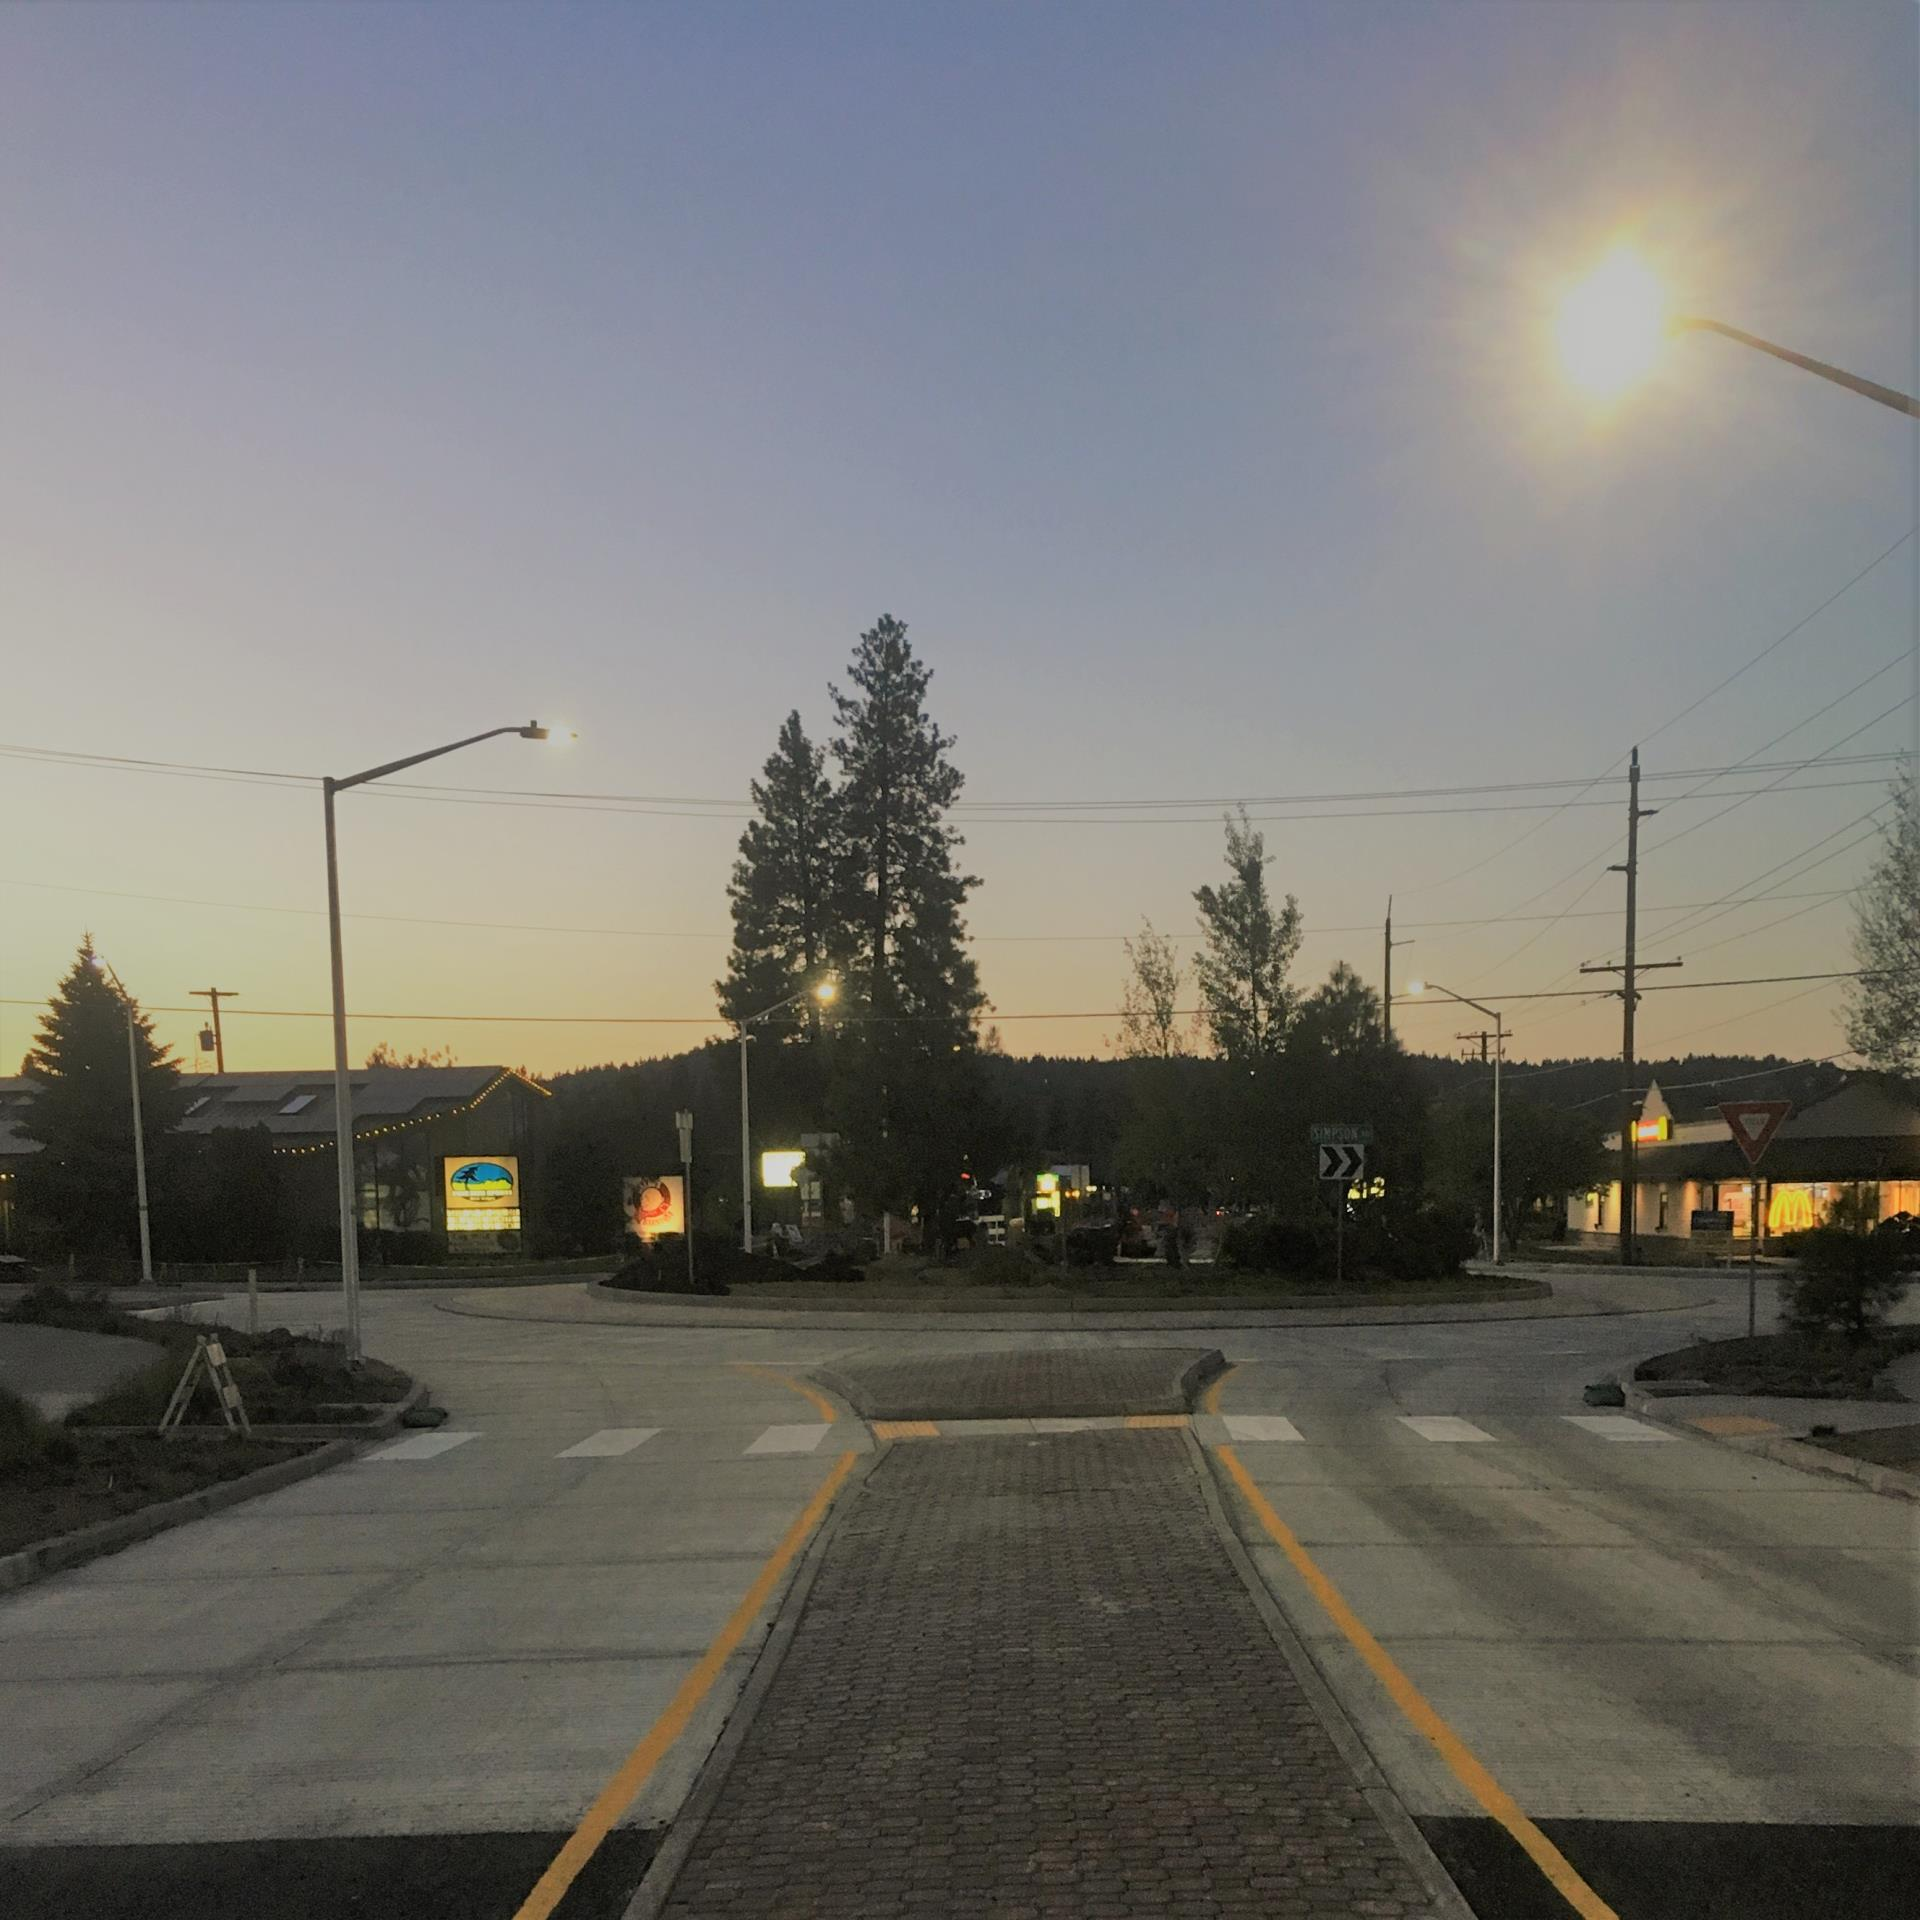 14th Street roundabout.